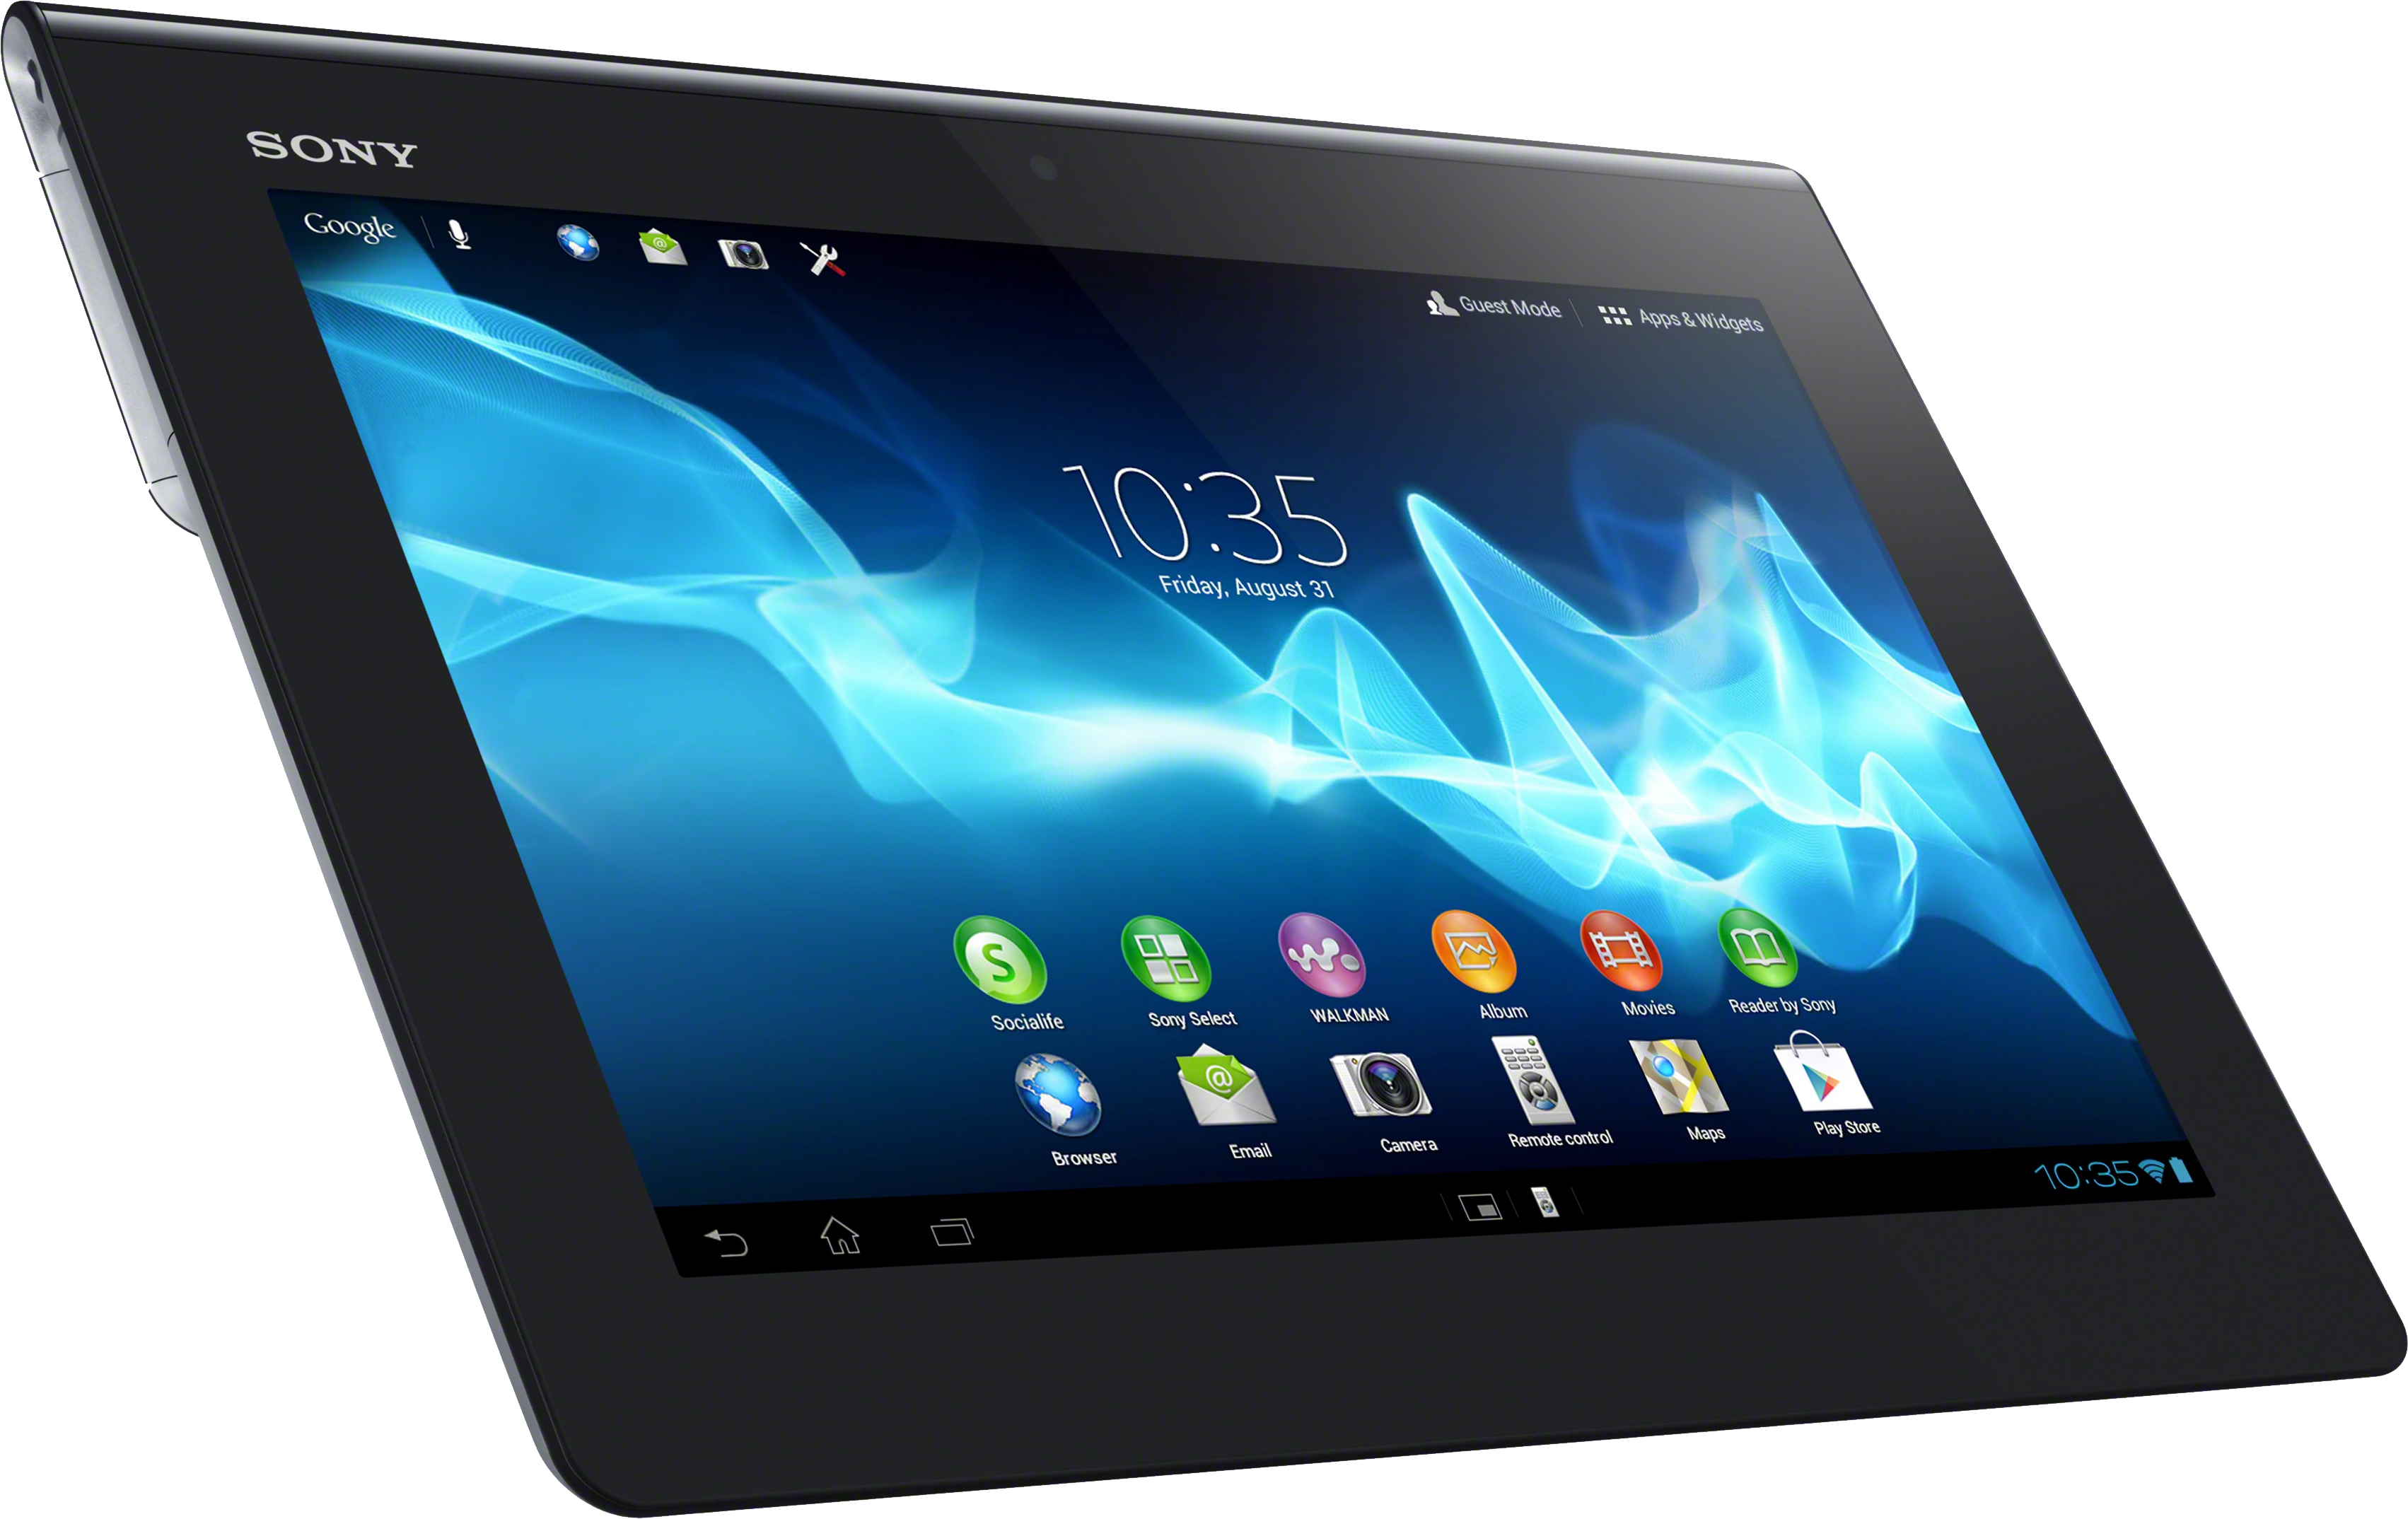 Tablet HD PNG - 117520